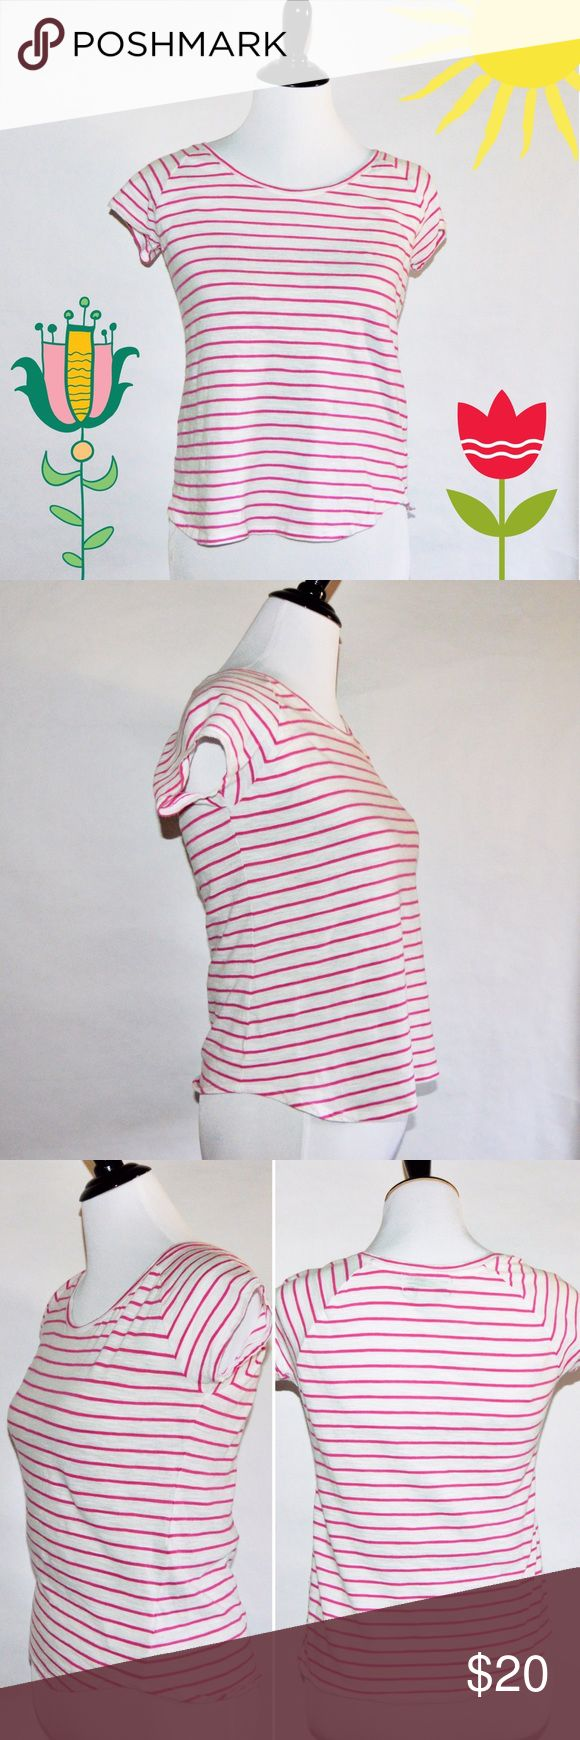 "Pink & White Stripes Short Sleeve Top Pink & White Stripes Short Sleeve Top 100% Cotton  Super cute and simple spring or summer top. Looks good with jeans and can be dressed up. EUC. No rips or stains.   Measurements Petite Small-Chest:17"" across / 34"" around, Length:22""  🔆Bundle 2 items = 10% OFF 🔆Bundle 3 or more = MAKE OFFER ❌ No Trades KNIT by Hampshire Studio Tops Tees - Short Sleeve"